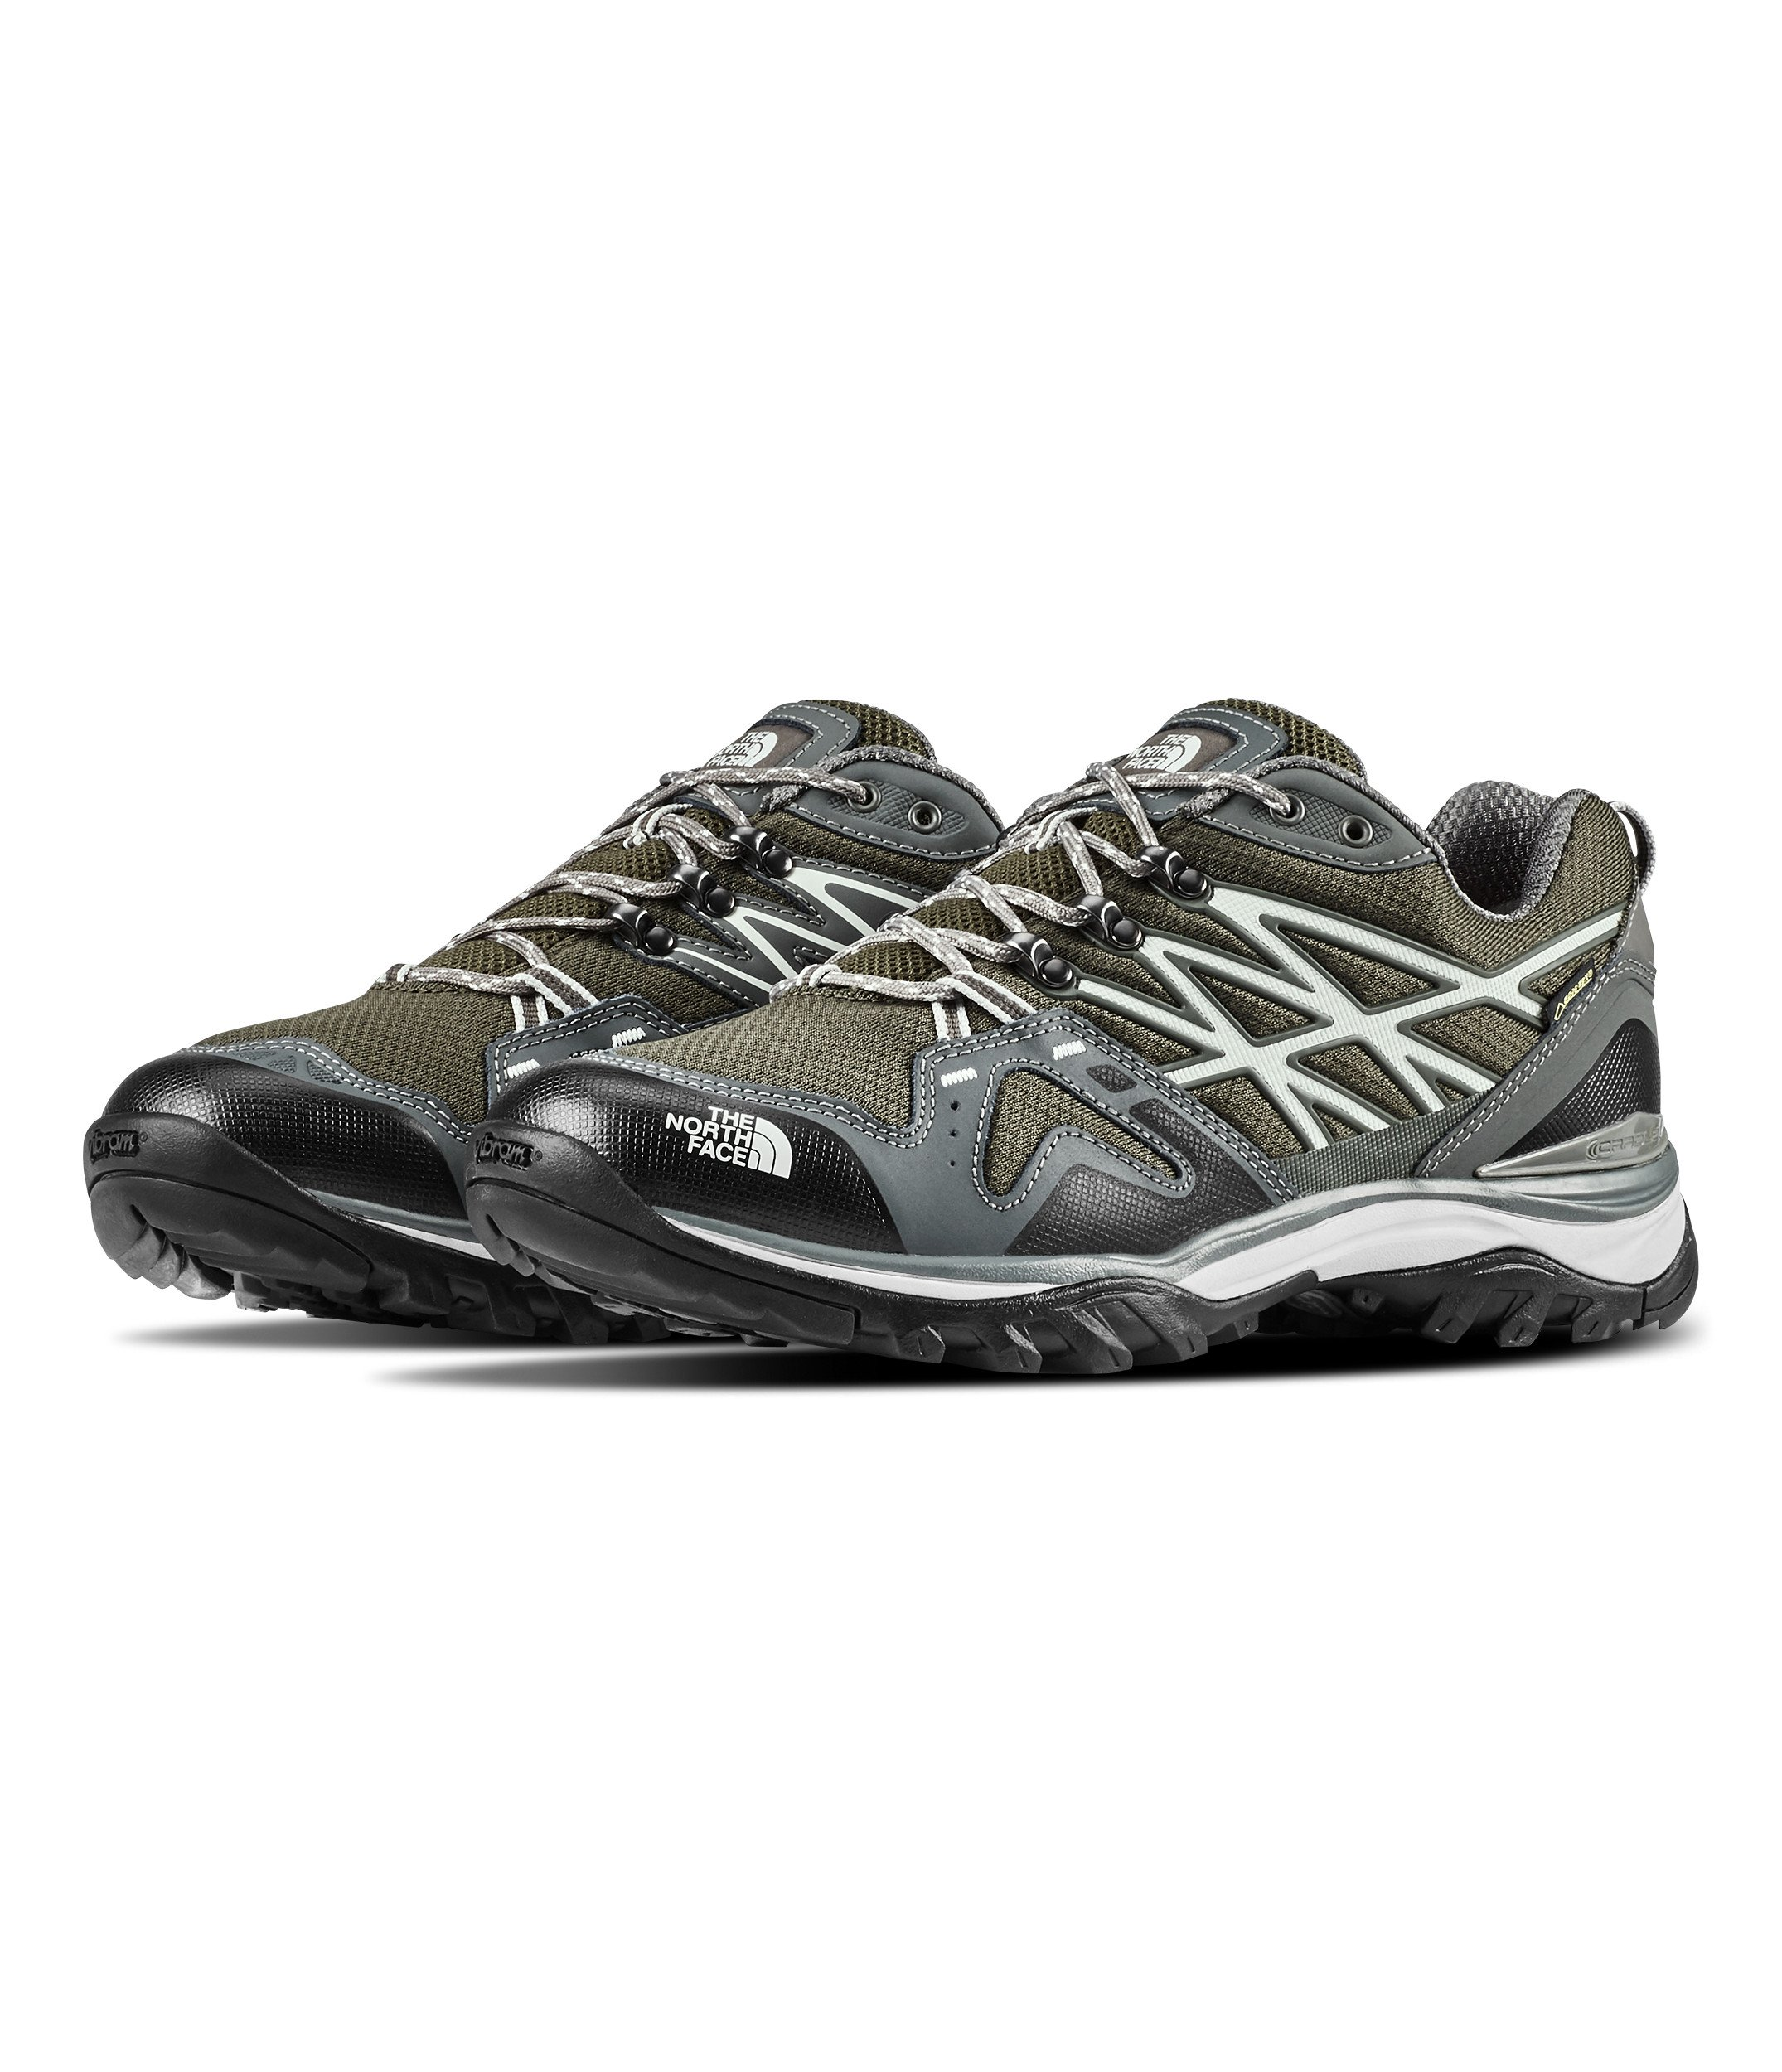 Galleon - The North Face Men s Hedgehog Fastpack GTX¿ New Taupe Green Moon  Mist Grey 8.5 EE US b9b3923f6fb